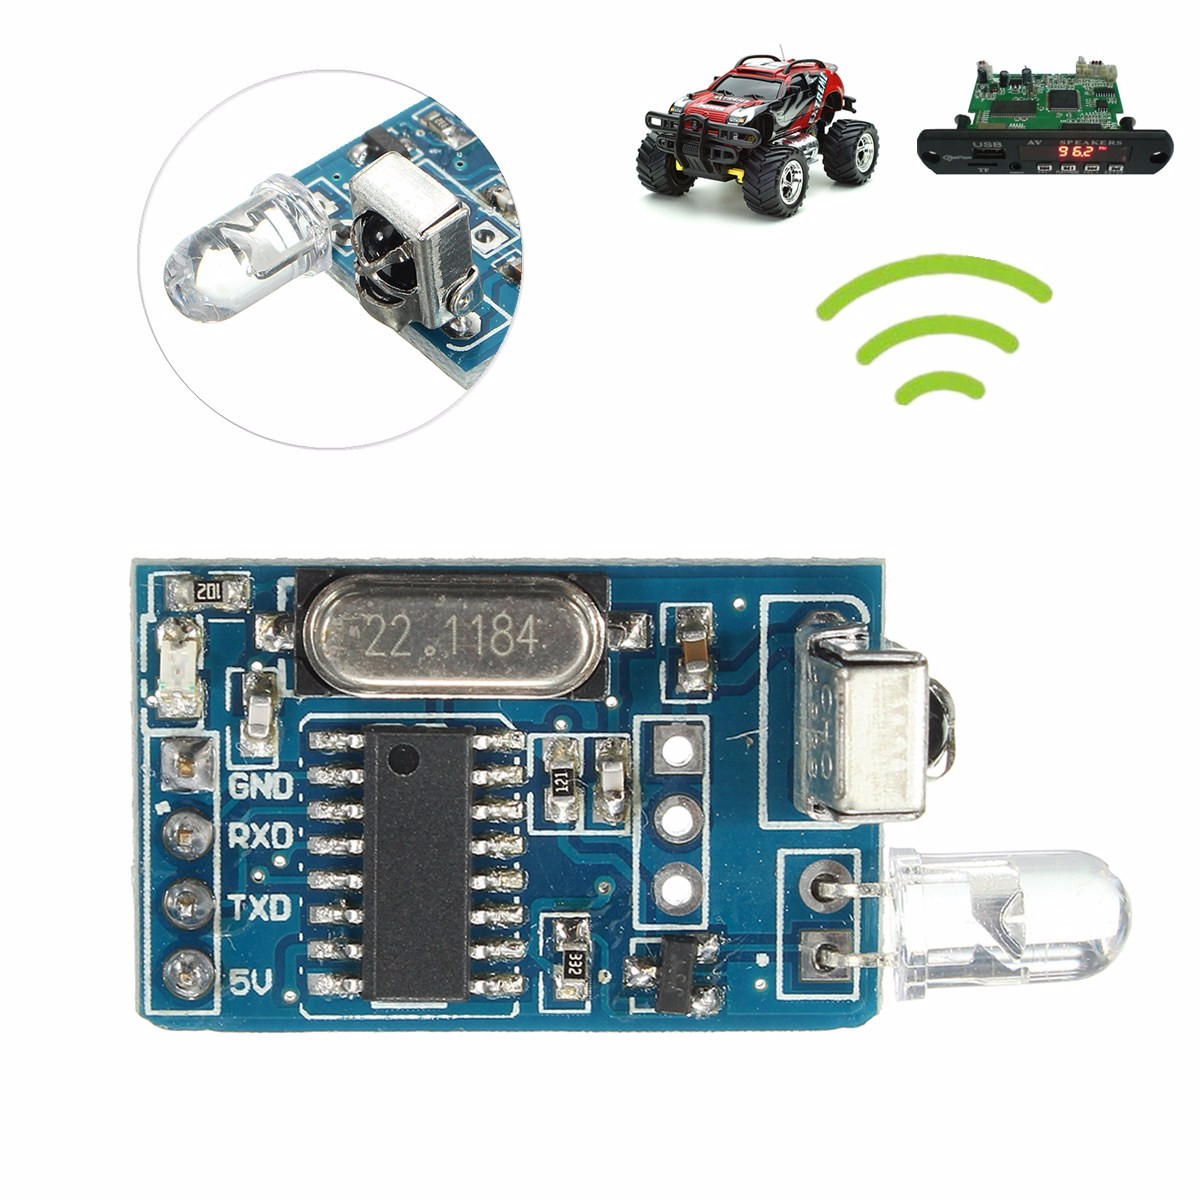 Dc 5v Standard Qi Wireless Charger Pcba Circuit Board Coil Diy Aliexpresscom Buy With Leory Ir Infrared Remote Decoder Encoding Transmitter Receiver Module Integrated Circuits Modules Boards